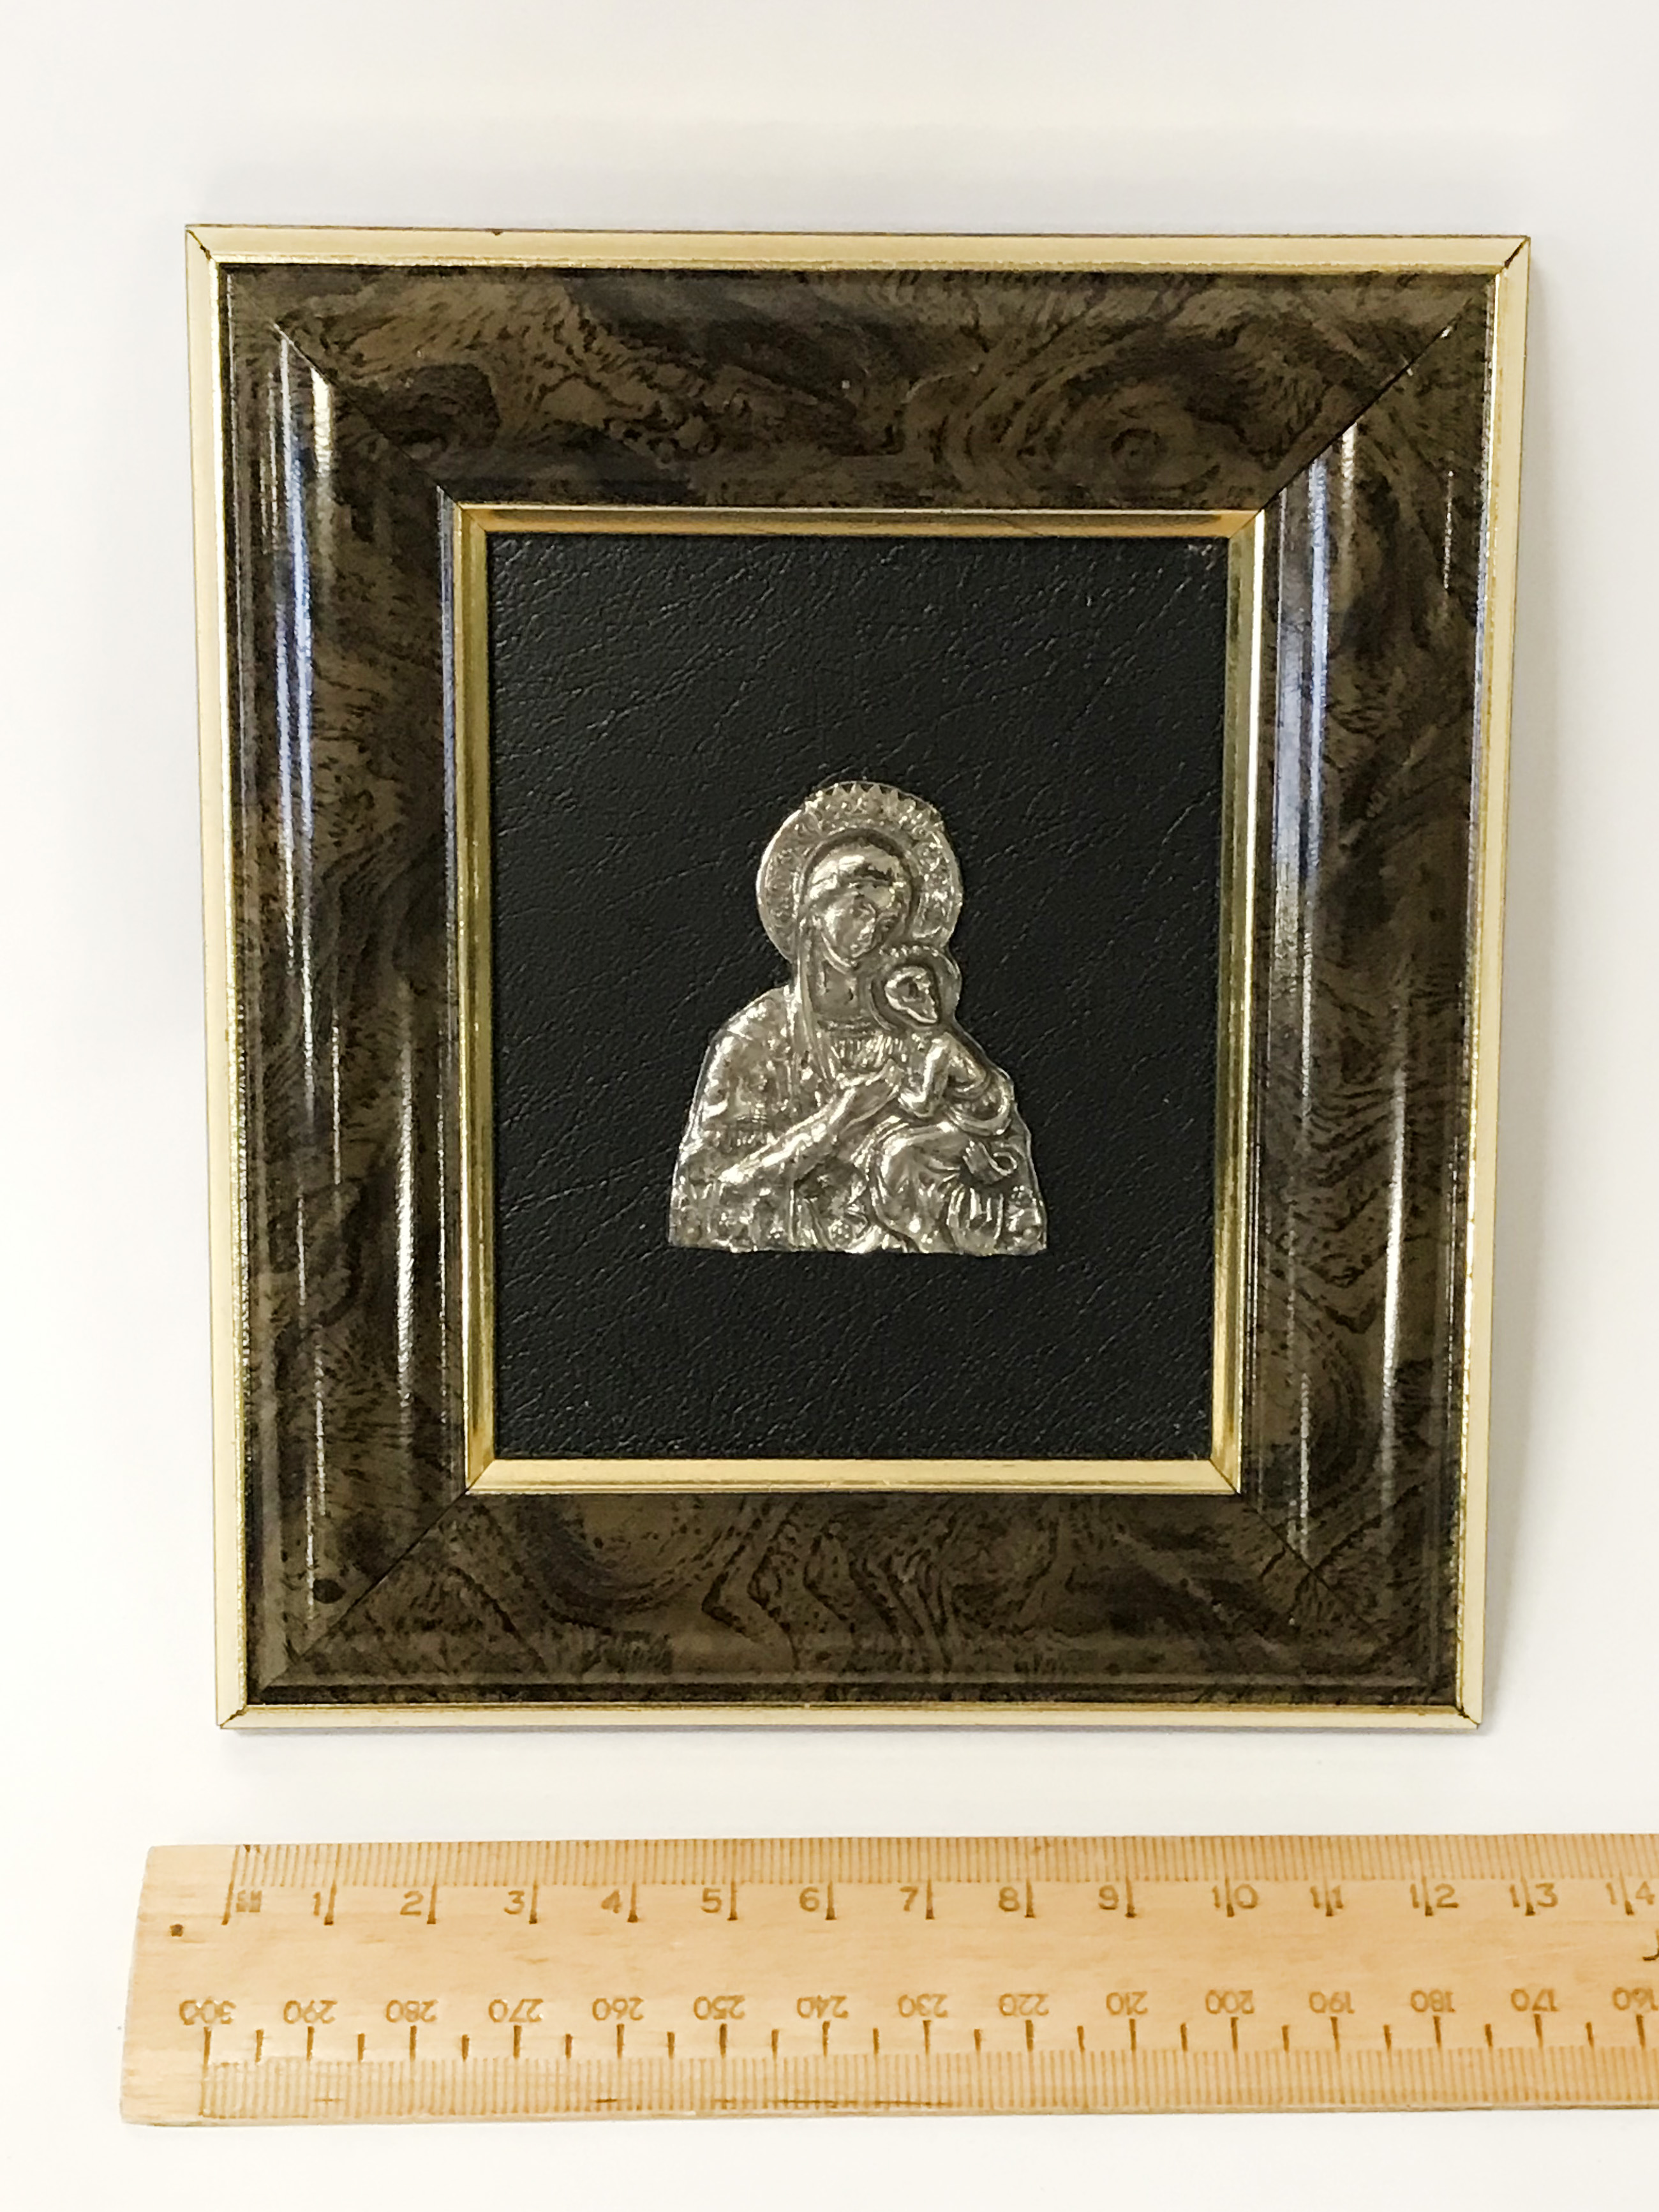 HM SILVER RELIGIOUS PICTURE - 13CMS X 15CMS